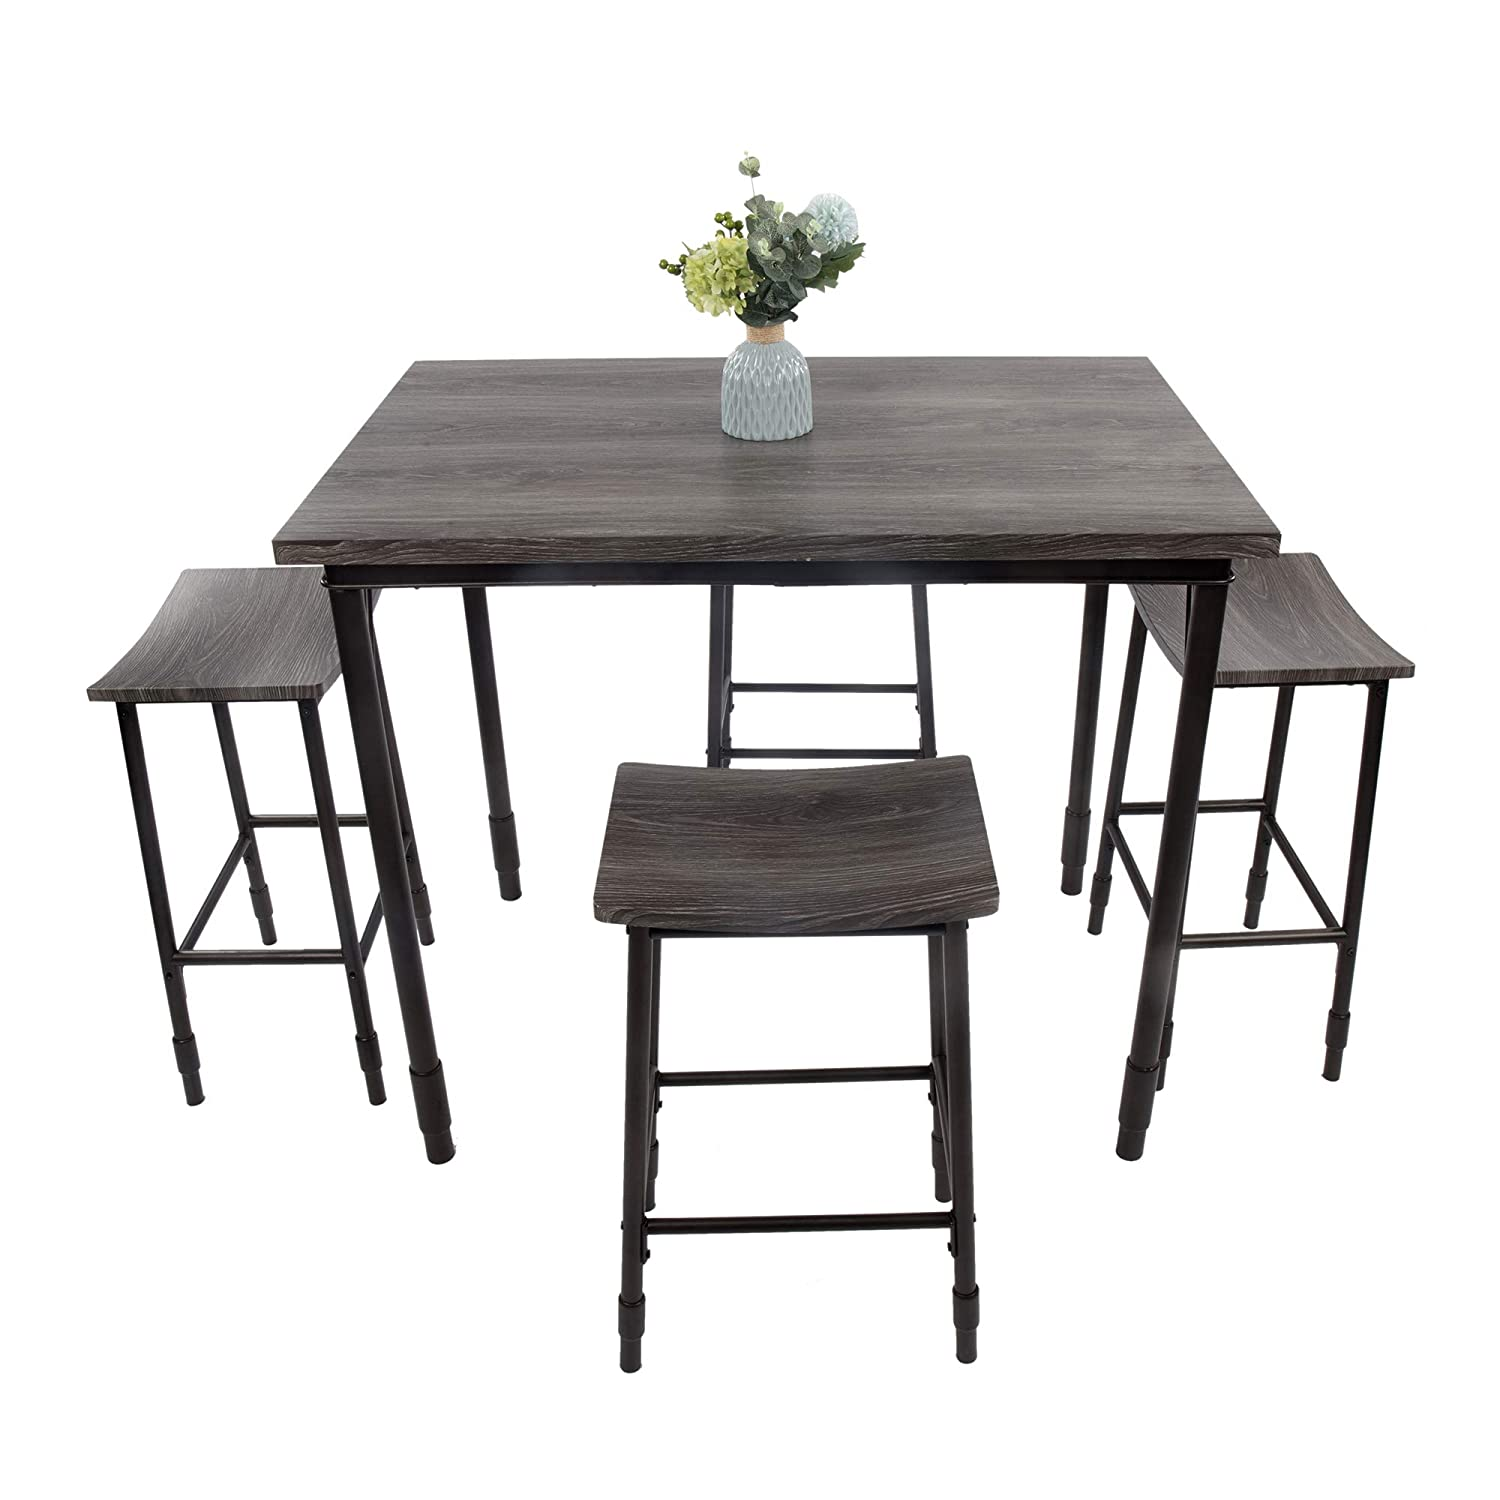 LUCKYERMORE 5 Piece Bar Kitchen Table Set and Chairs for 4 Counter Height Dining Table with 4 Backless Bar Stools Sturdy Durable Dining Furniture, Black